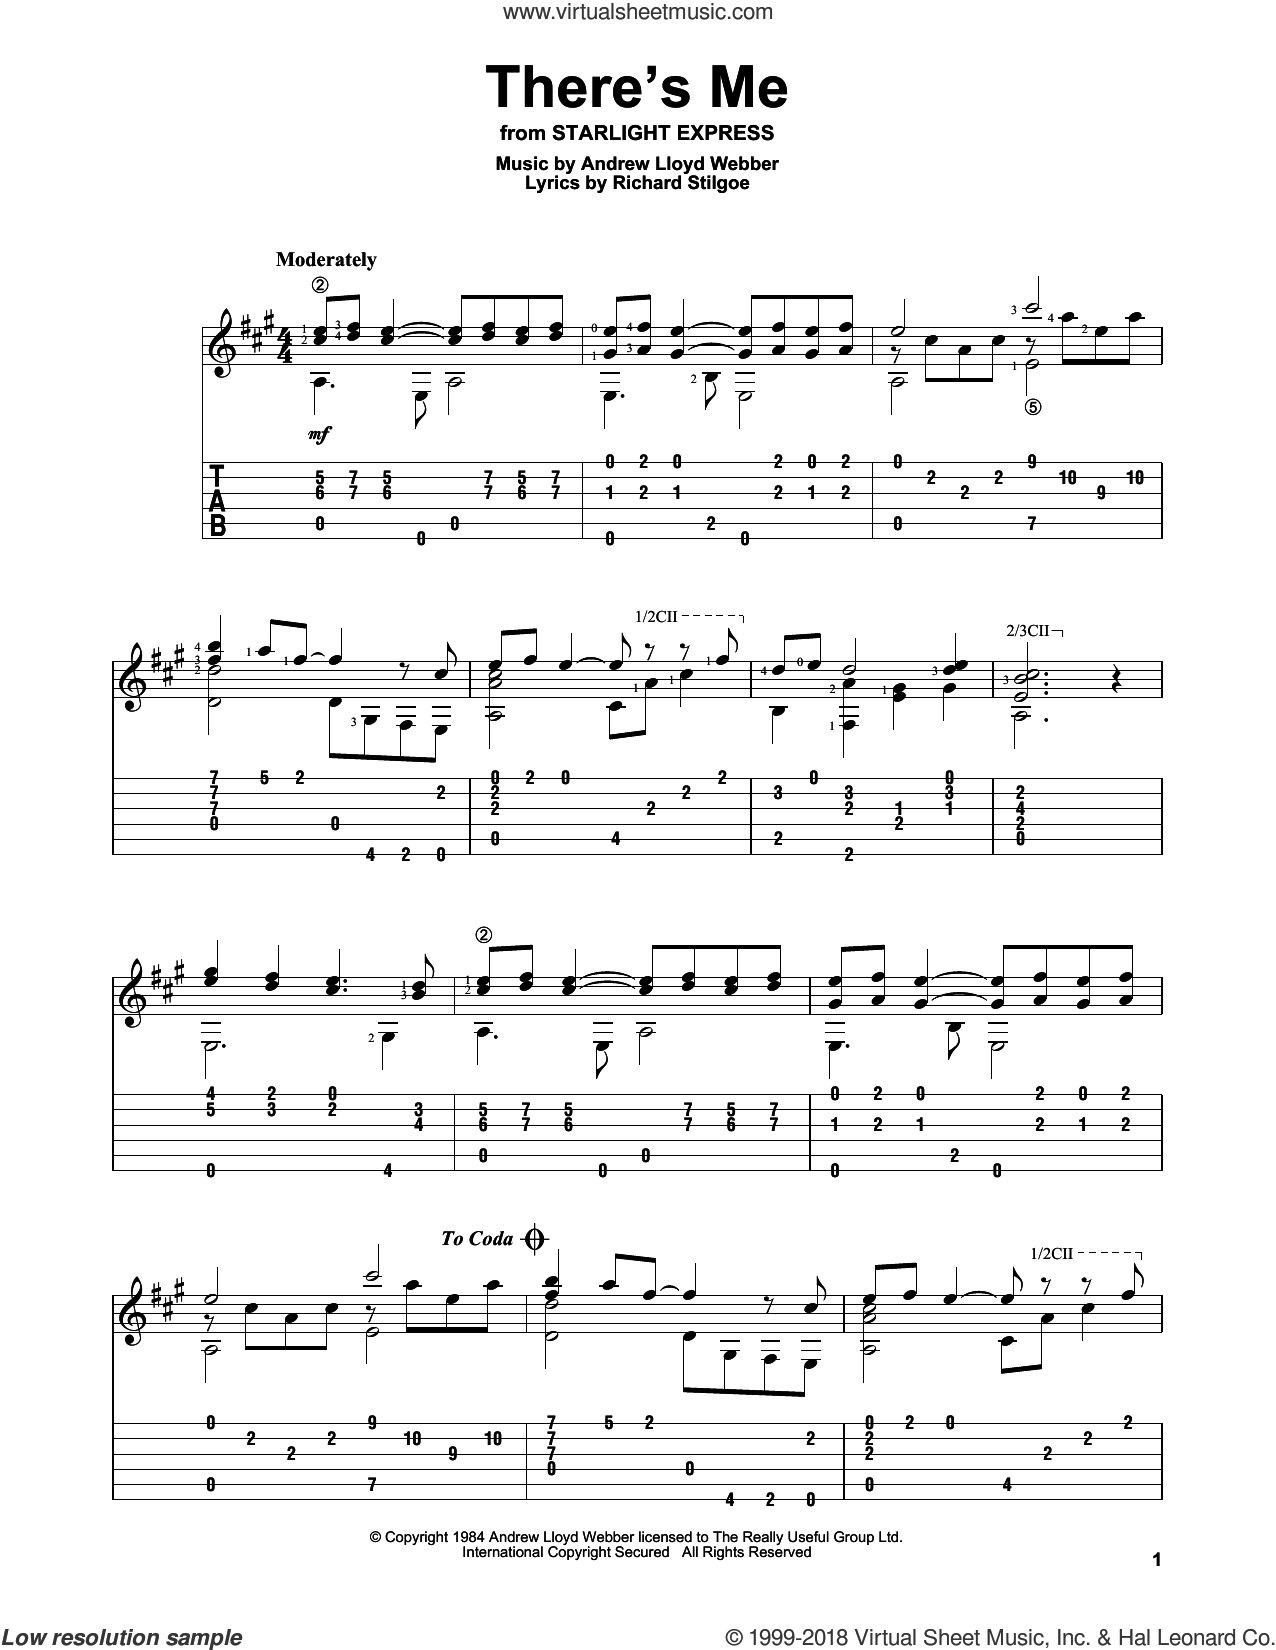 There's Me sheet music for guitar solo by Andrew Lloyd Webber and Richard Stilgoe, intermediate skill level